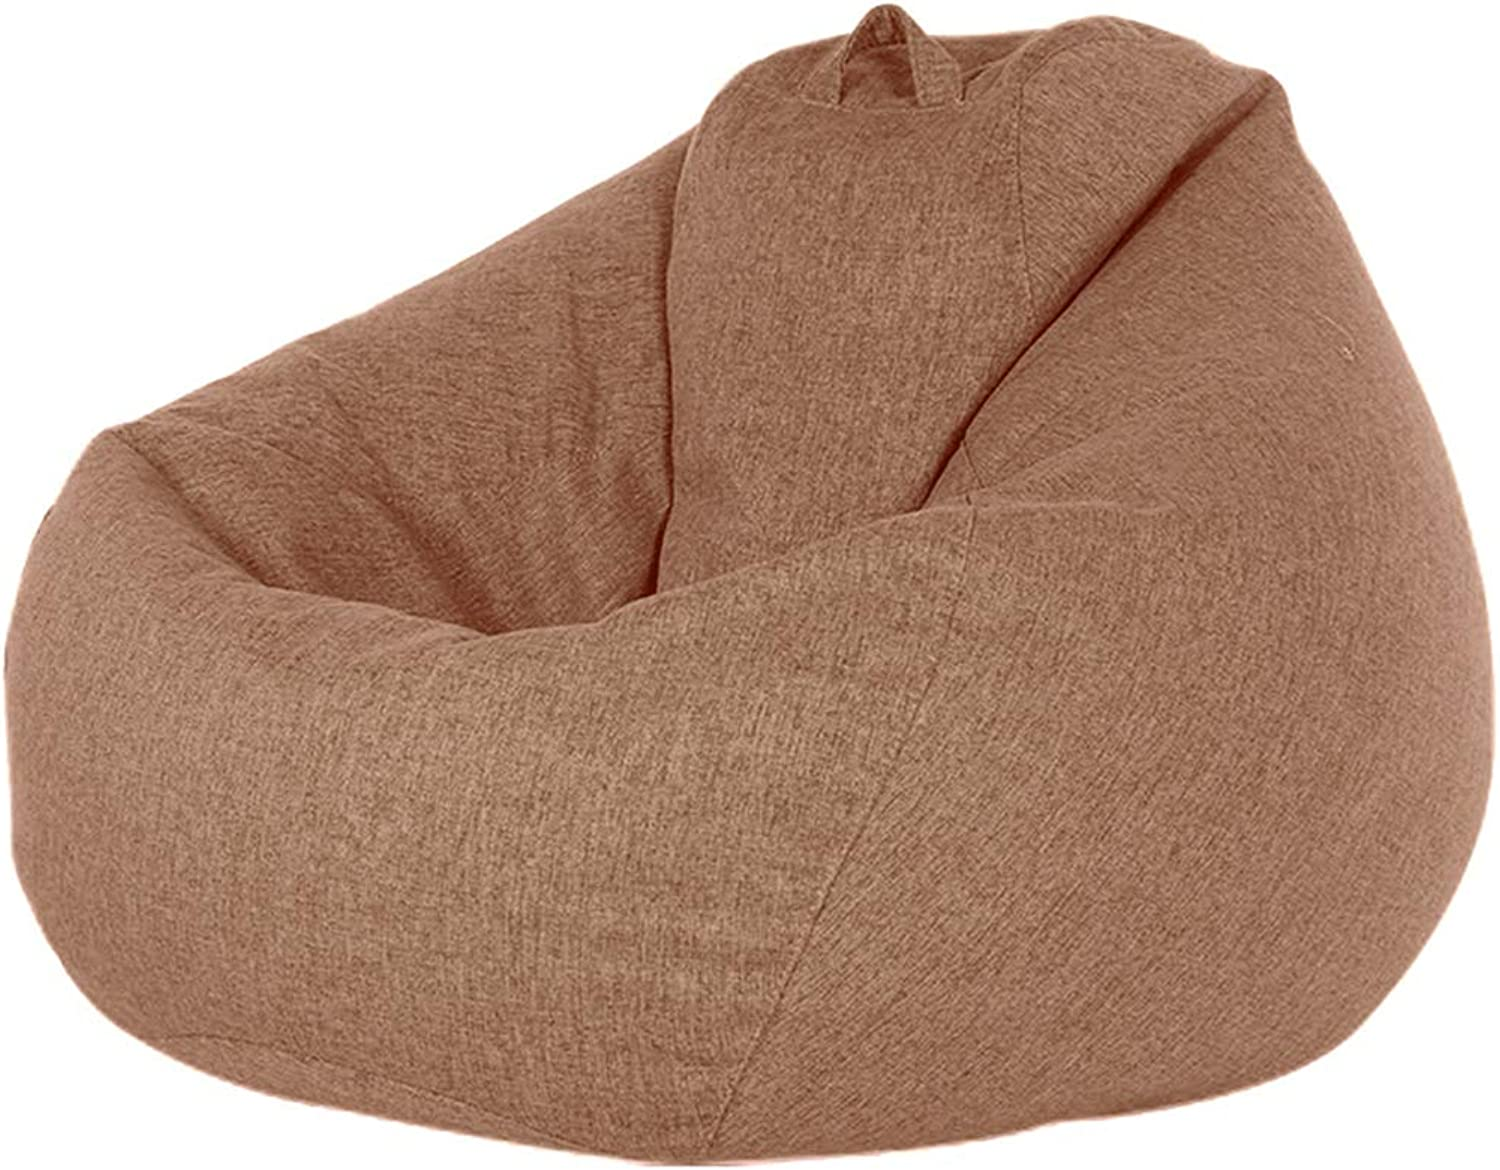 Enerhu Beanbag Adult Bean Bag Chair Indoor Outdoor Floor Cushion Realxing Sofa Comfortable Removable Cover for Home (One Size, Brown)